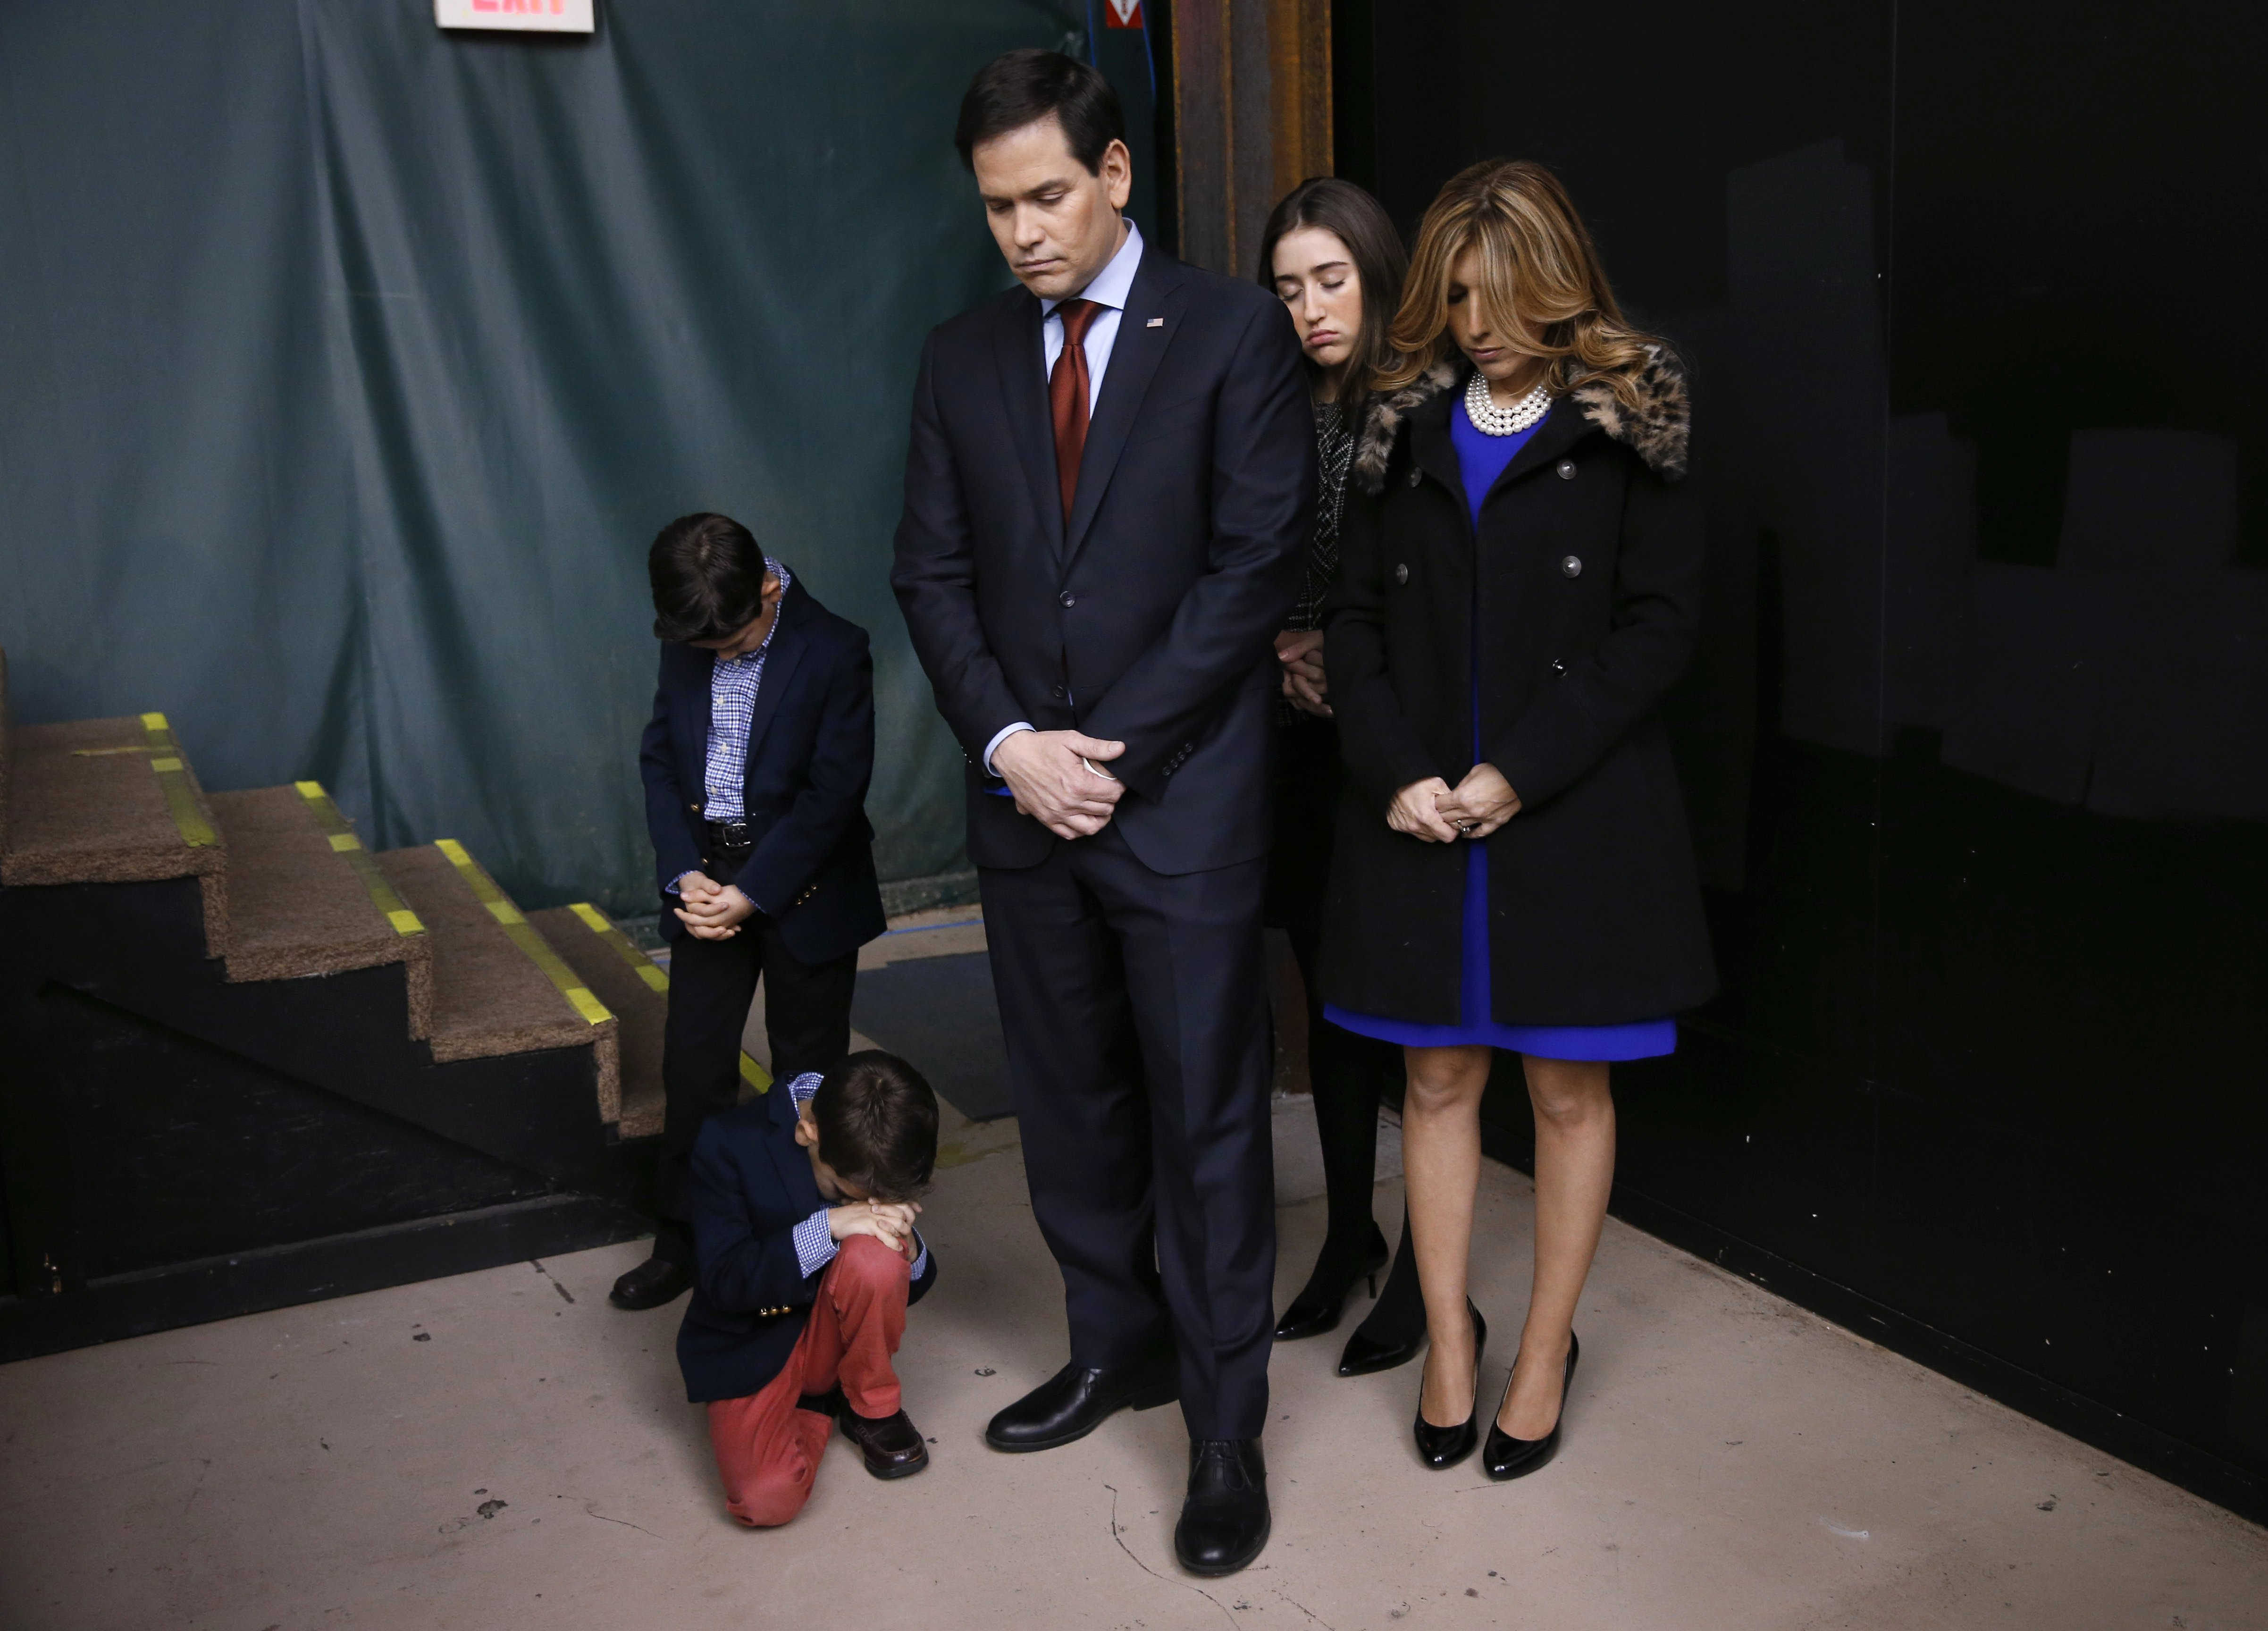 Republican presidential candidate Sen. Marco Rubio and his family pray during opening of a caucus site, Feb. 1, 2016 in Clive, Iowa.